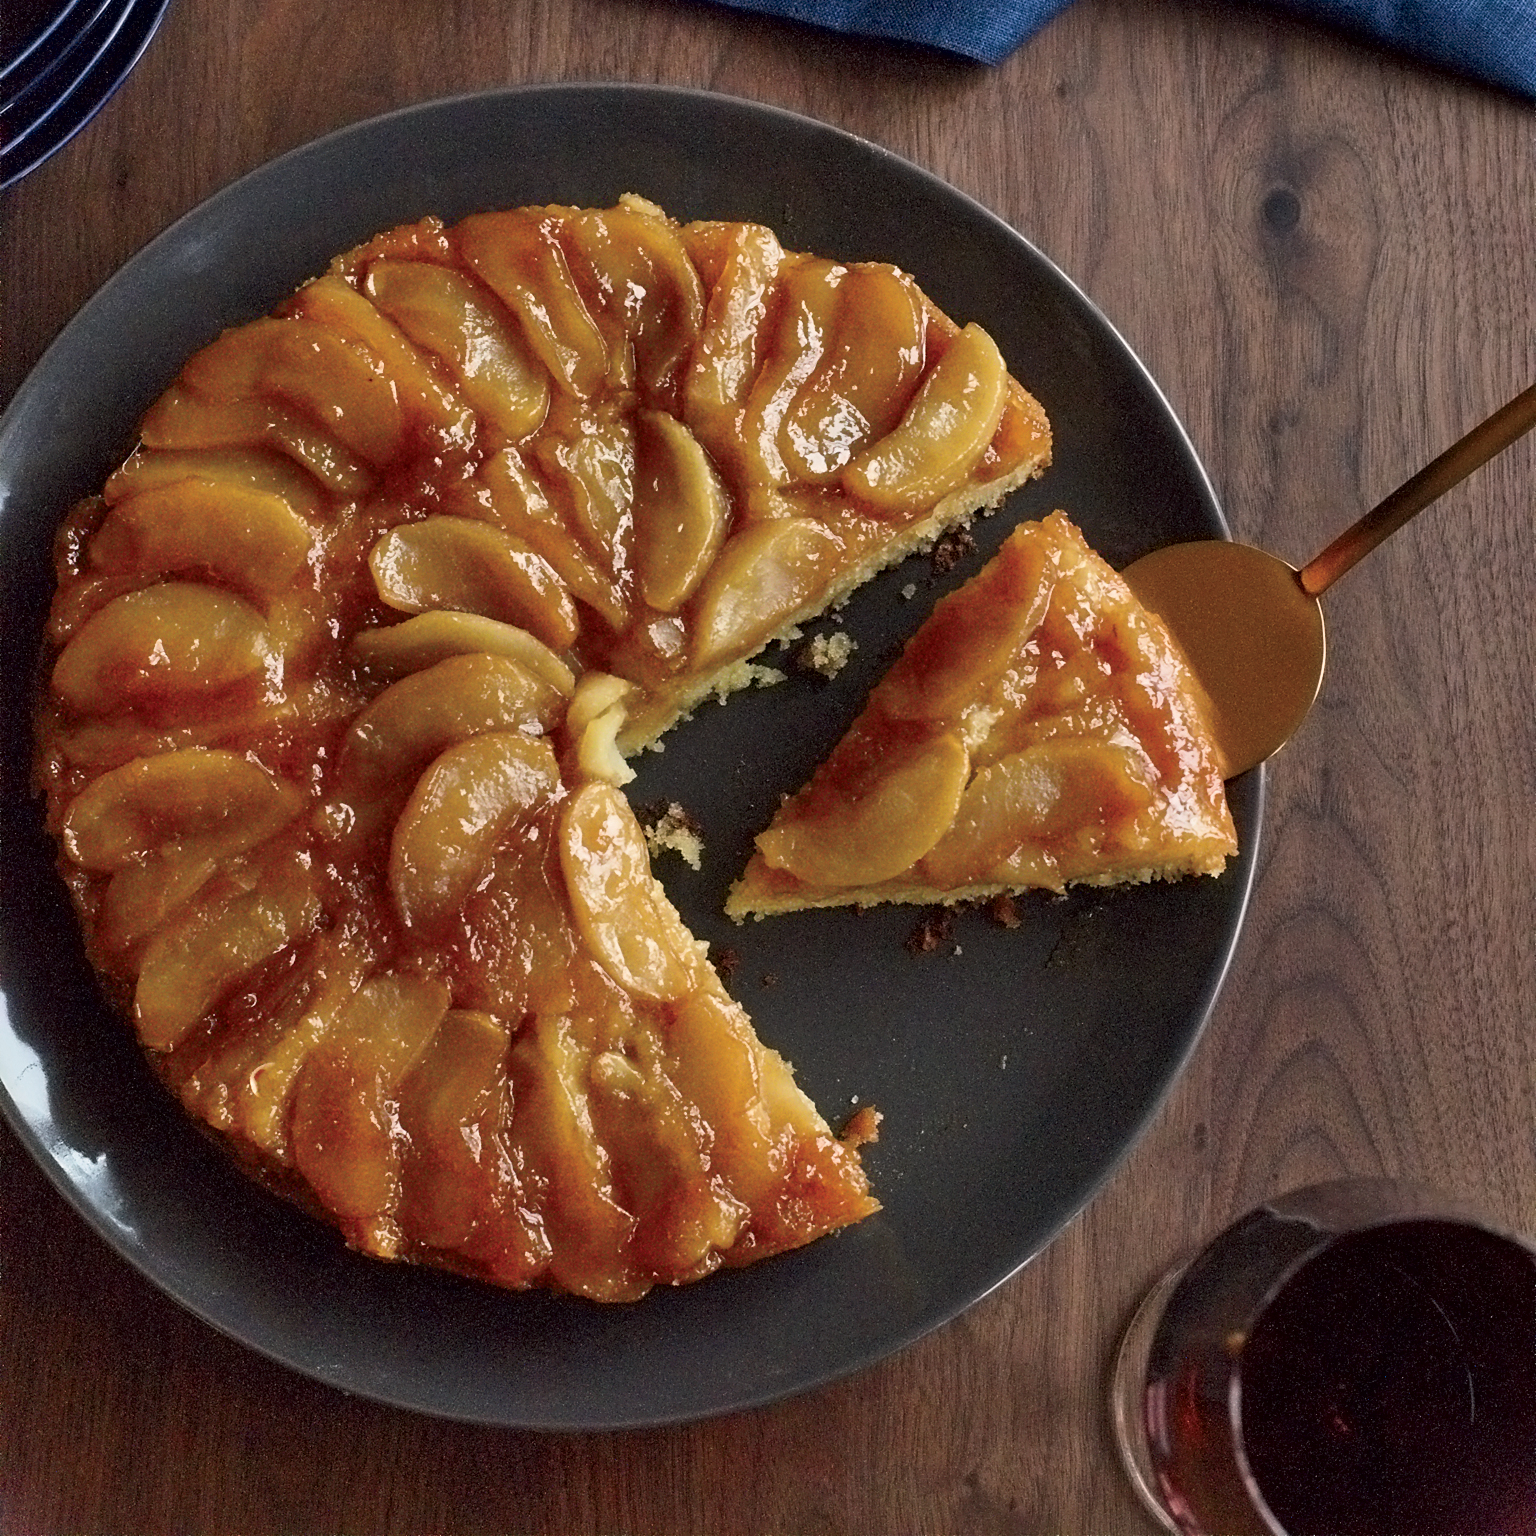 201011 R Apple Upside Down Cake Jpg